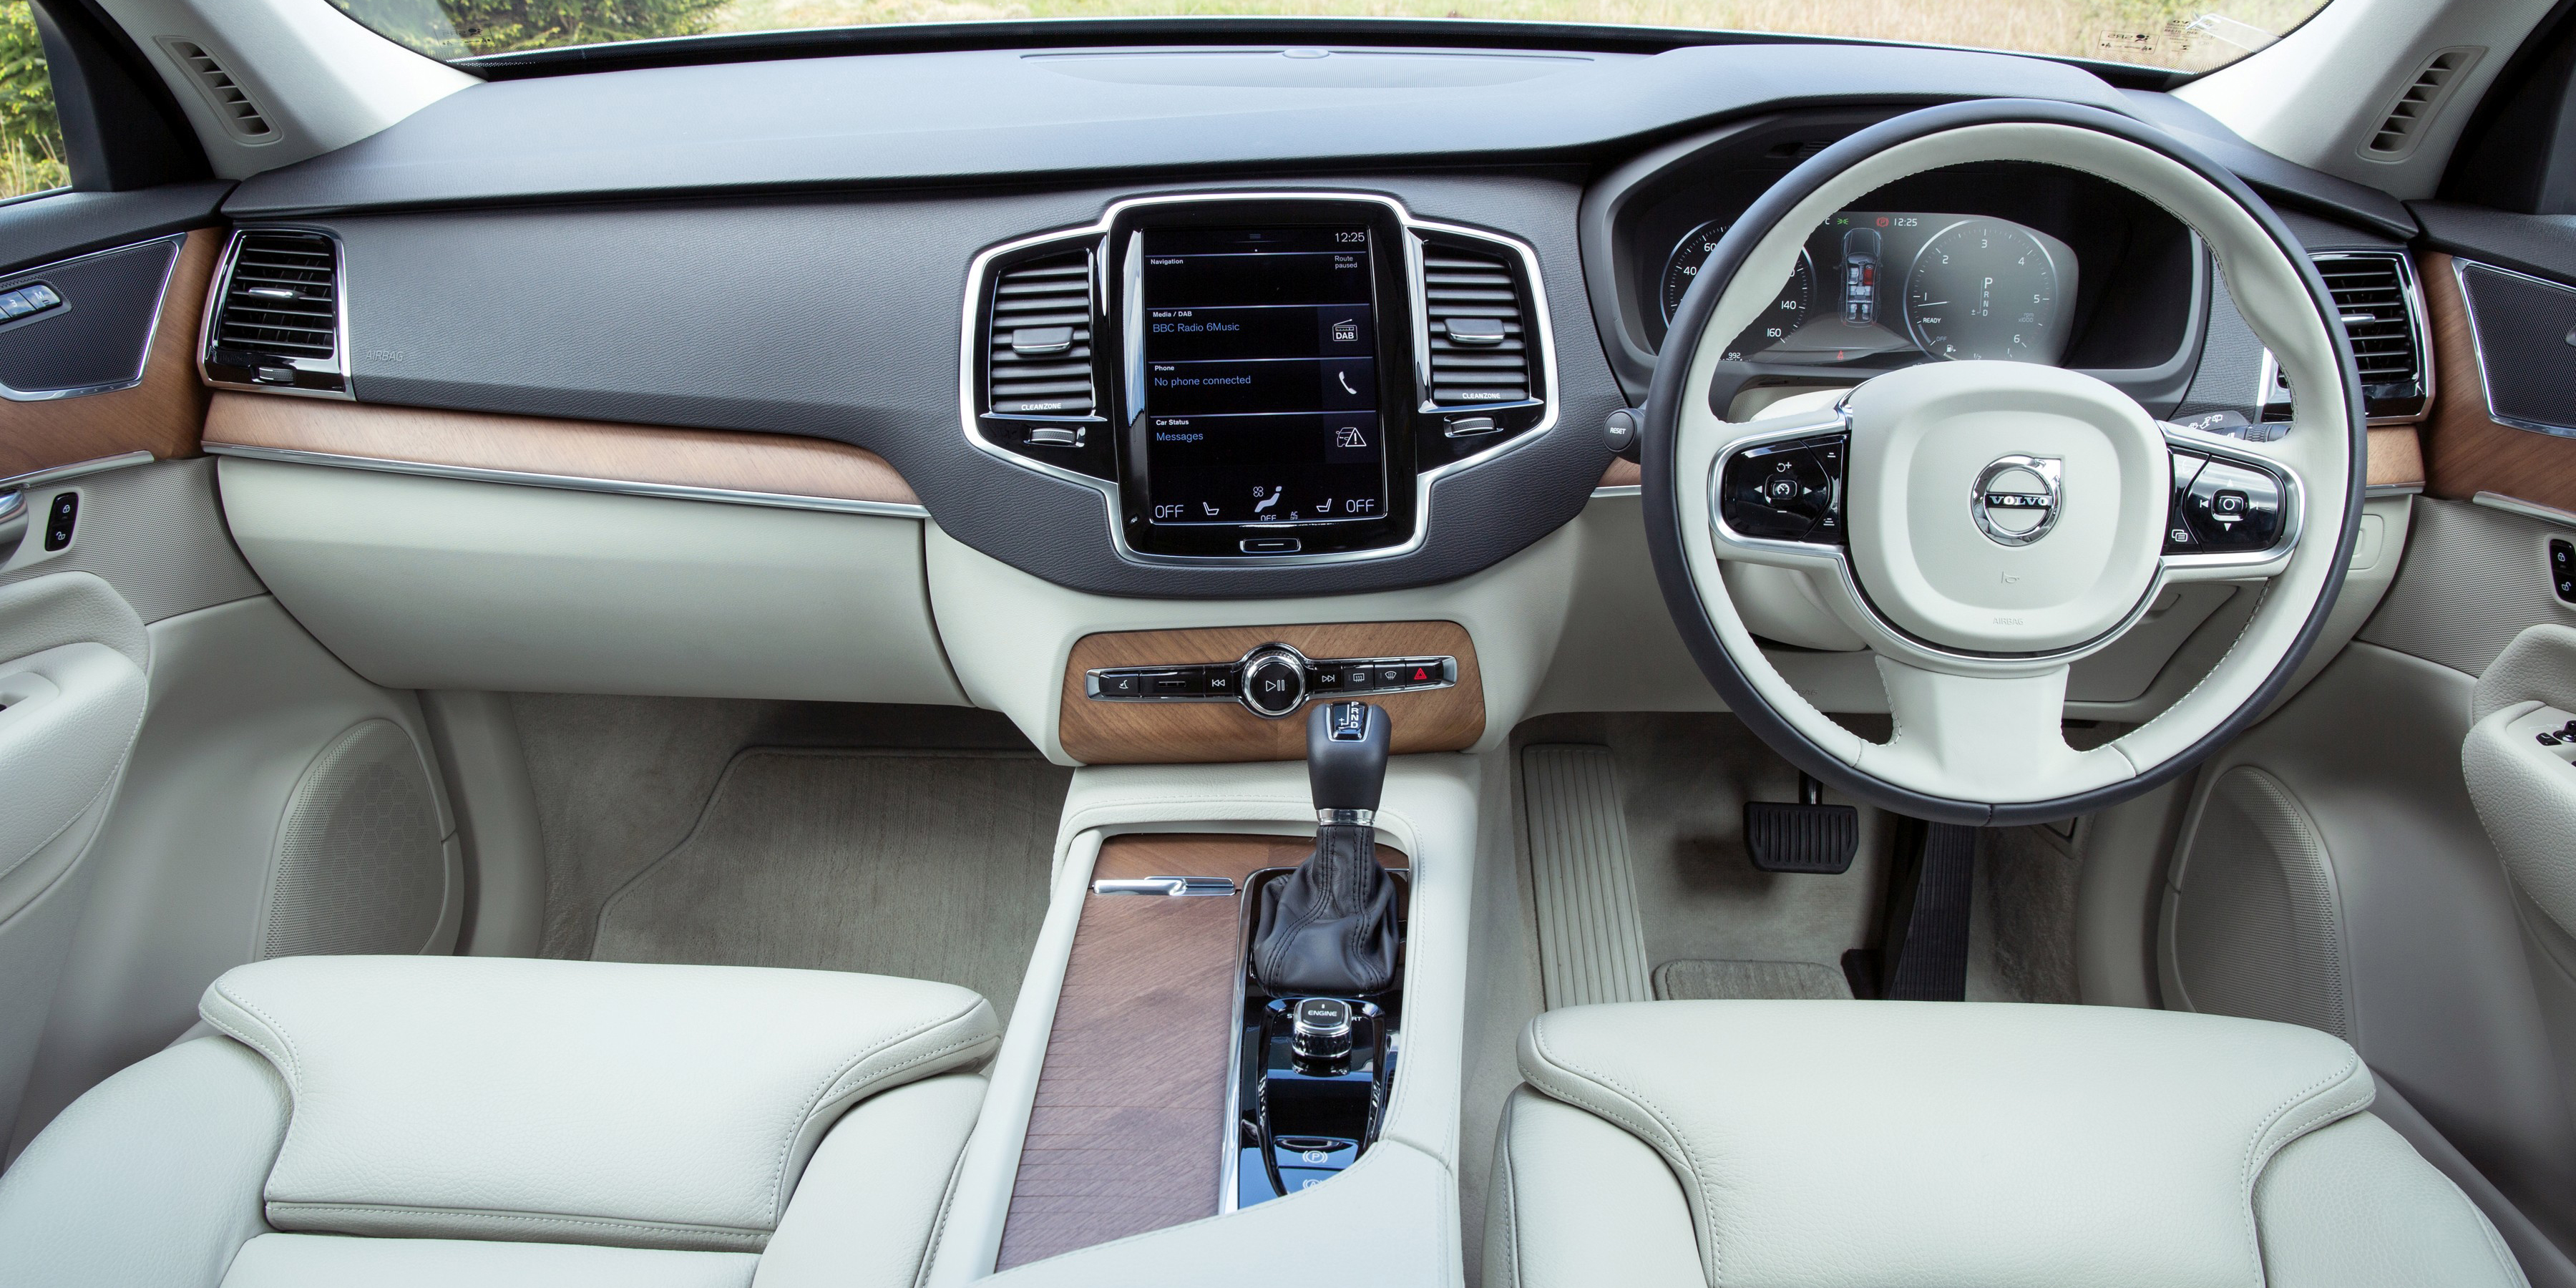 Used Cars Tucson >> Volvo XC90 Interior & Infotainment | carwow